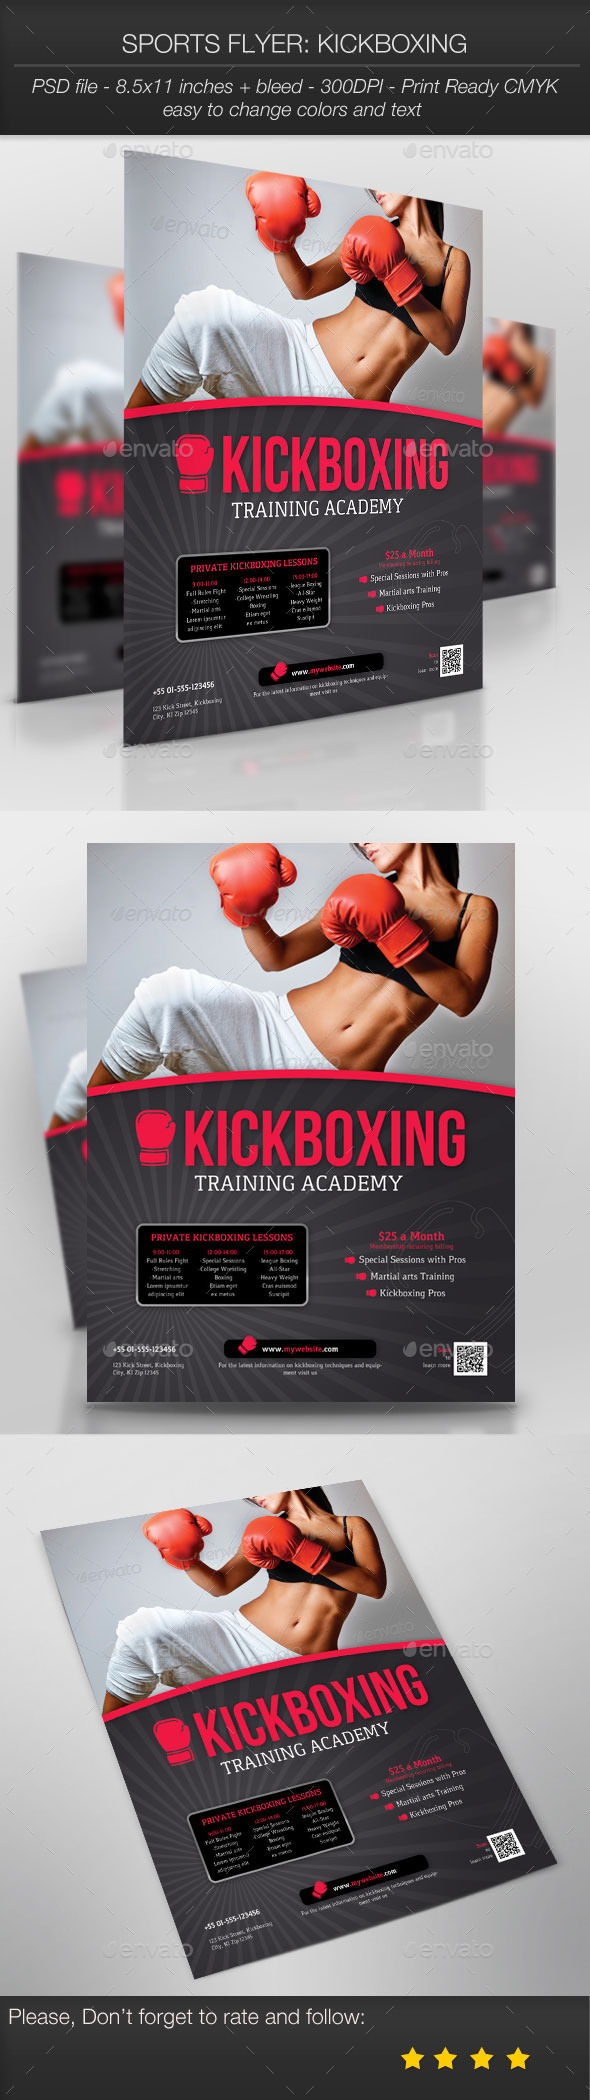 Sports Flyer: Kickboxing - Sports Events